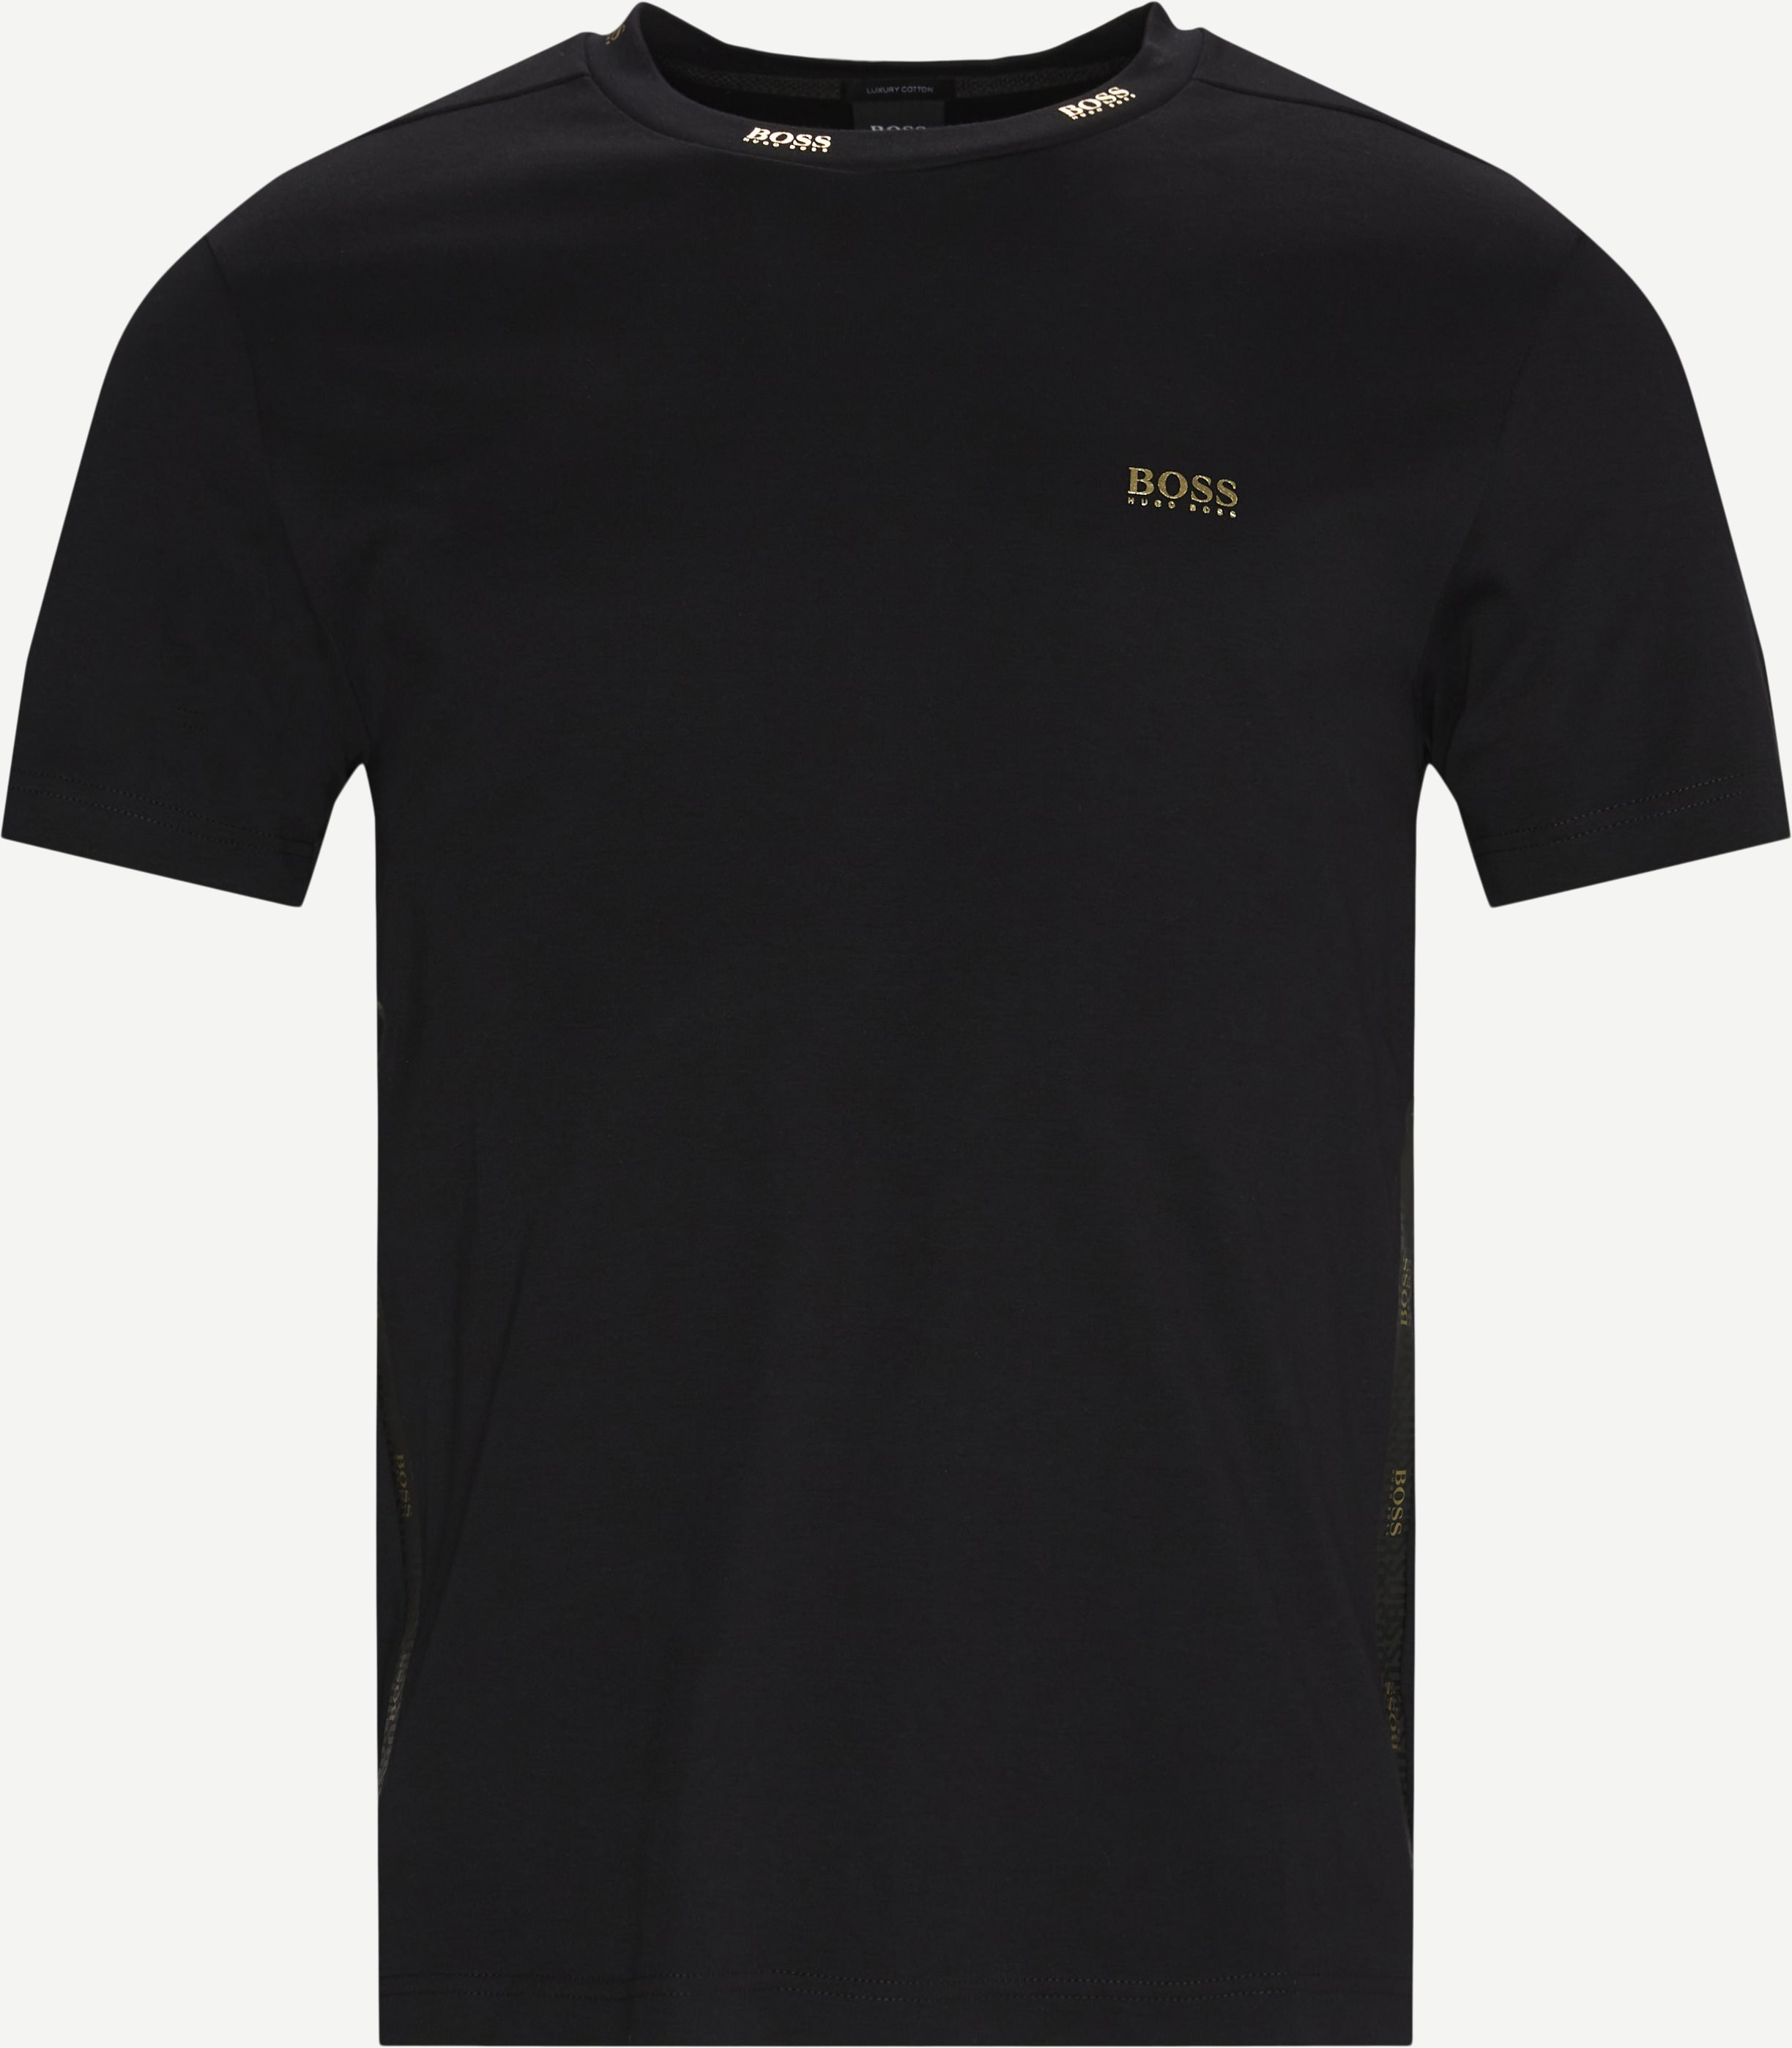 Tee Gold T-shirt - T-shirts - Regular - Svart